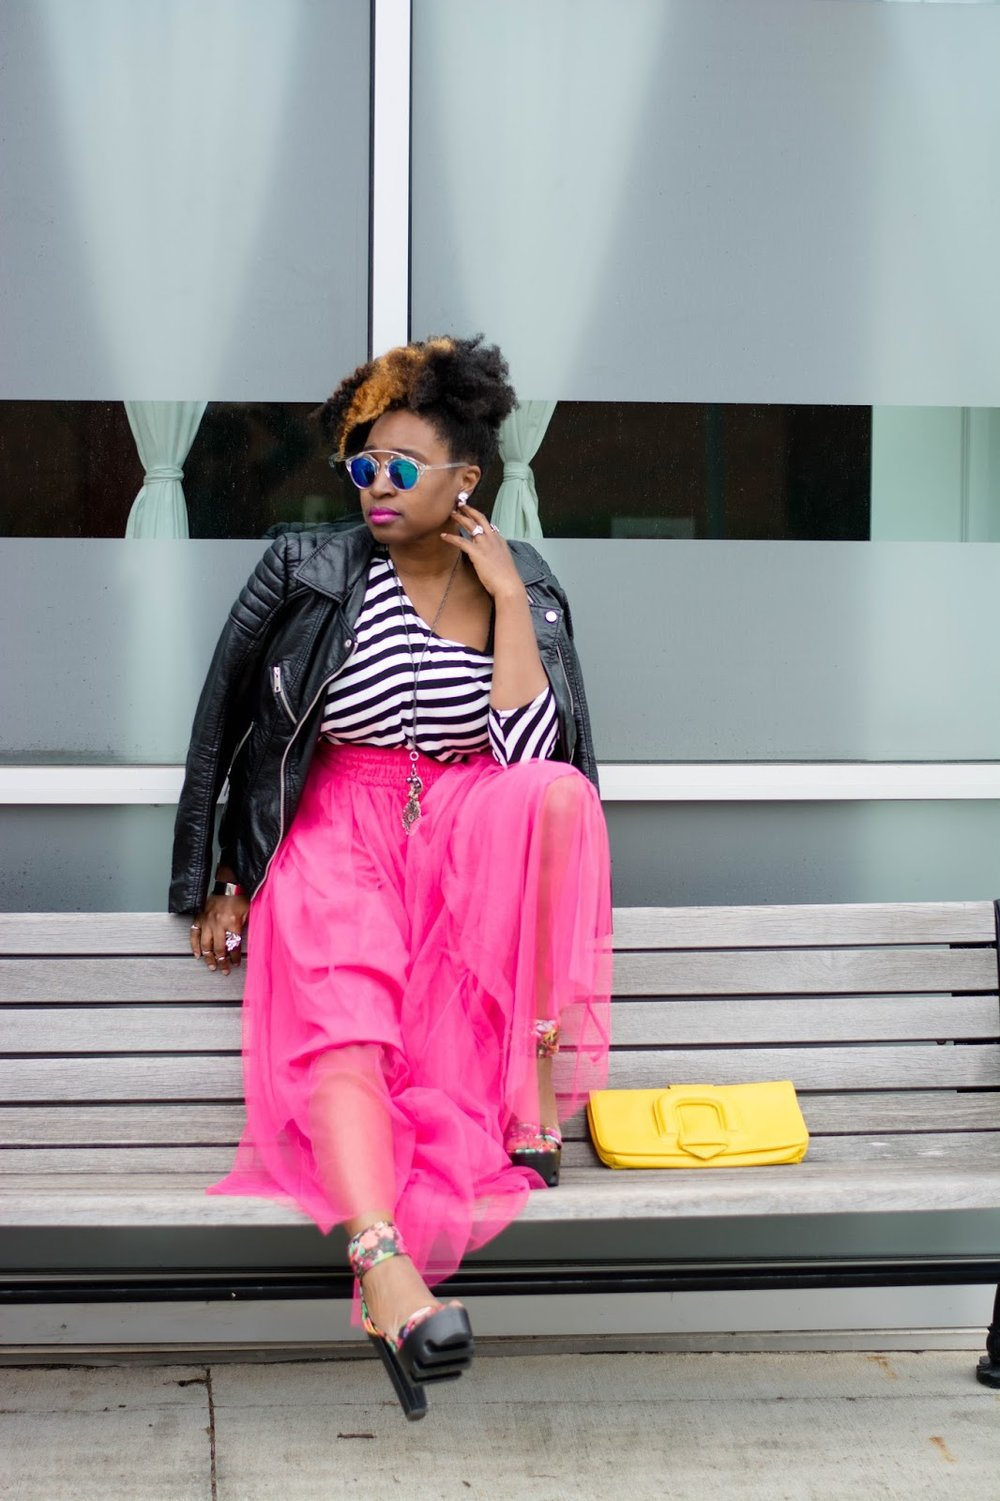 Atlanta Influence, Atlanta stylist, Style blogger, black blogger, natural girls rock, Black girls rock, natural hair, street style, Atlanta street fashion, Style blogger, black and white stripes, pink tulle, mixed prints, mirror sunnies, thrifted fashion, hm moto jacket, leather in the summer, black girls killing it, Stylist, natural hair, yellow clutch, shoedazzle, platforms